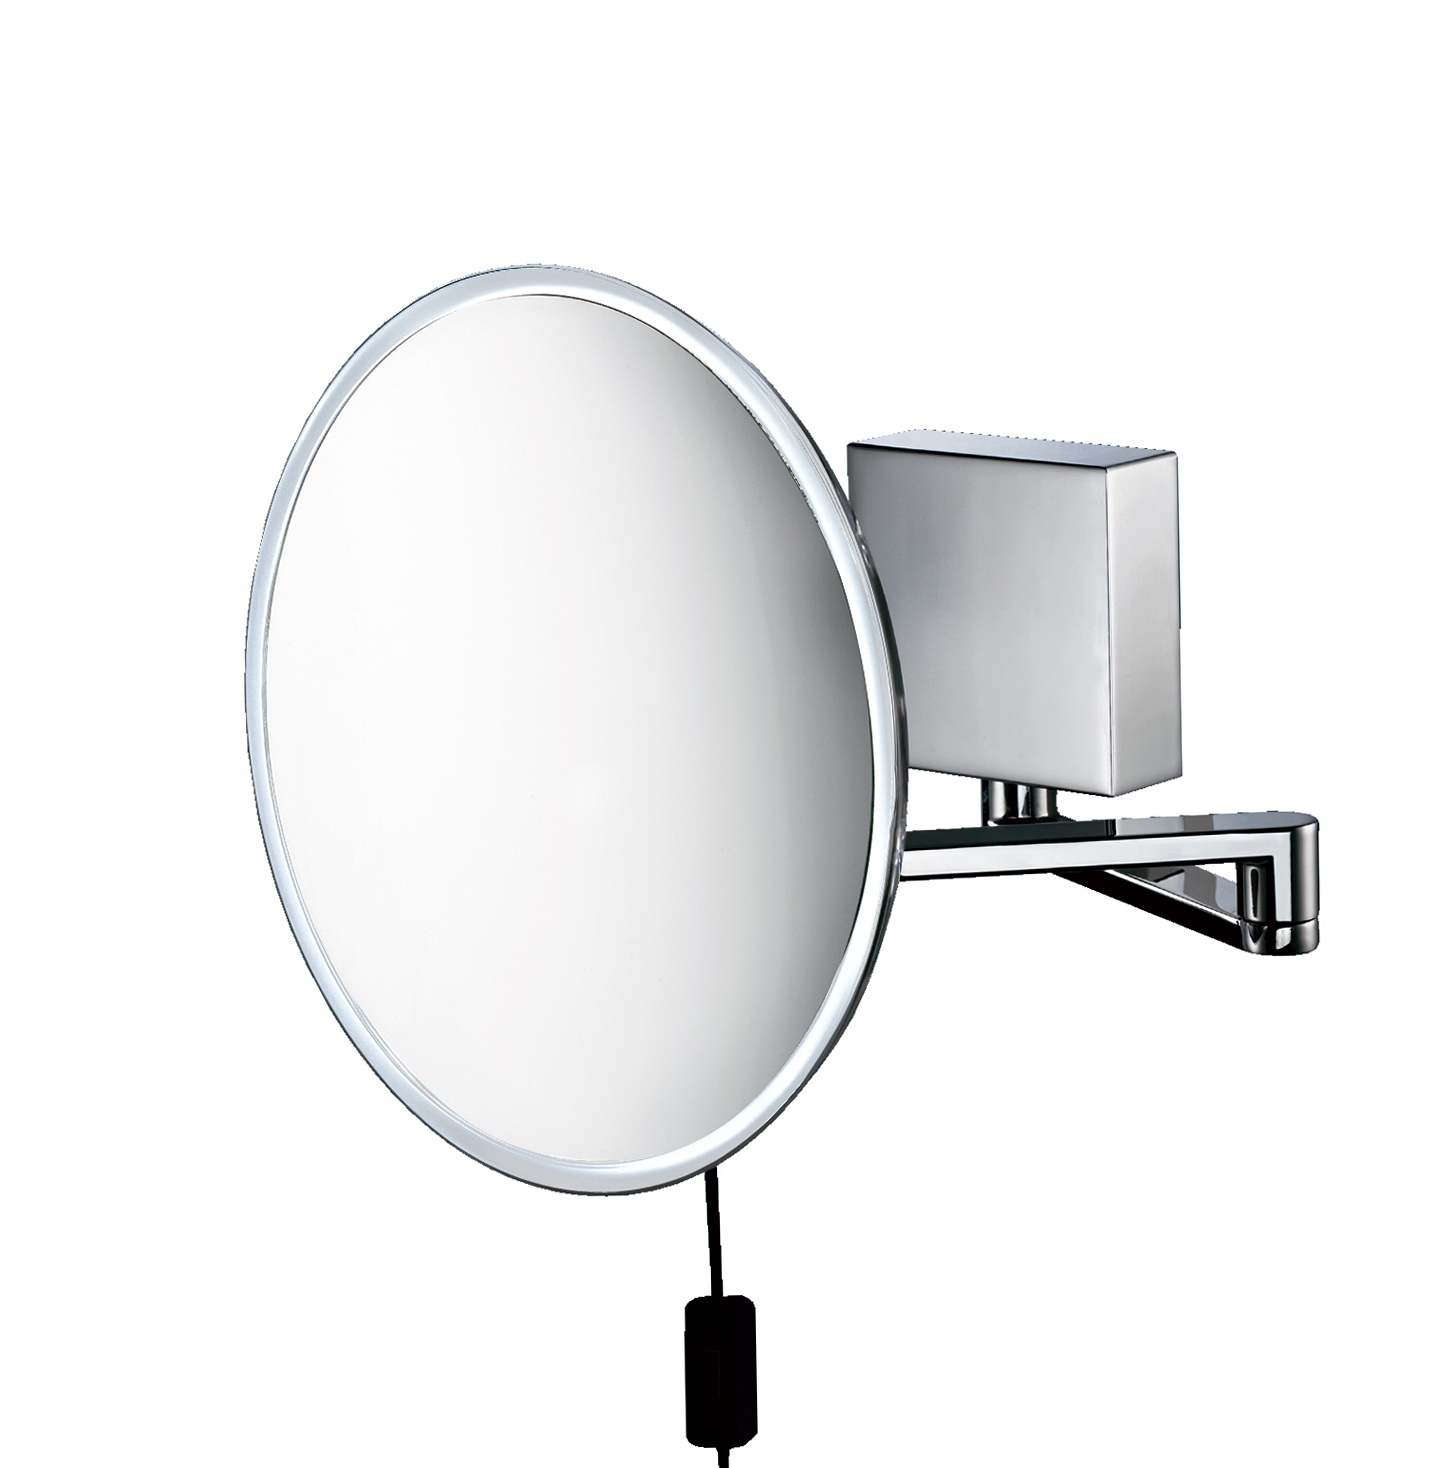 Wall mounted lighted makeup mirror 8x home design ideas for Wall mounted makeup mirror